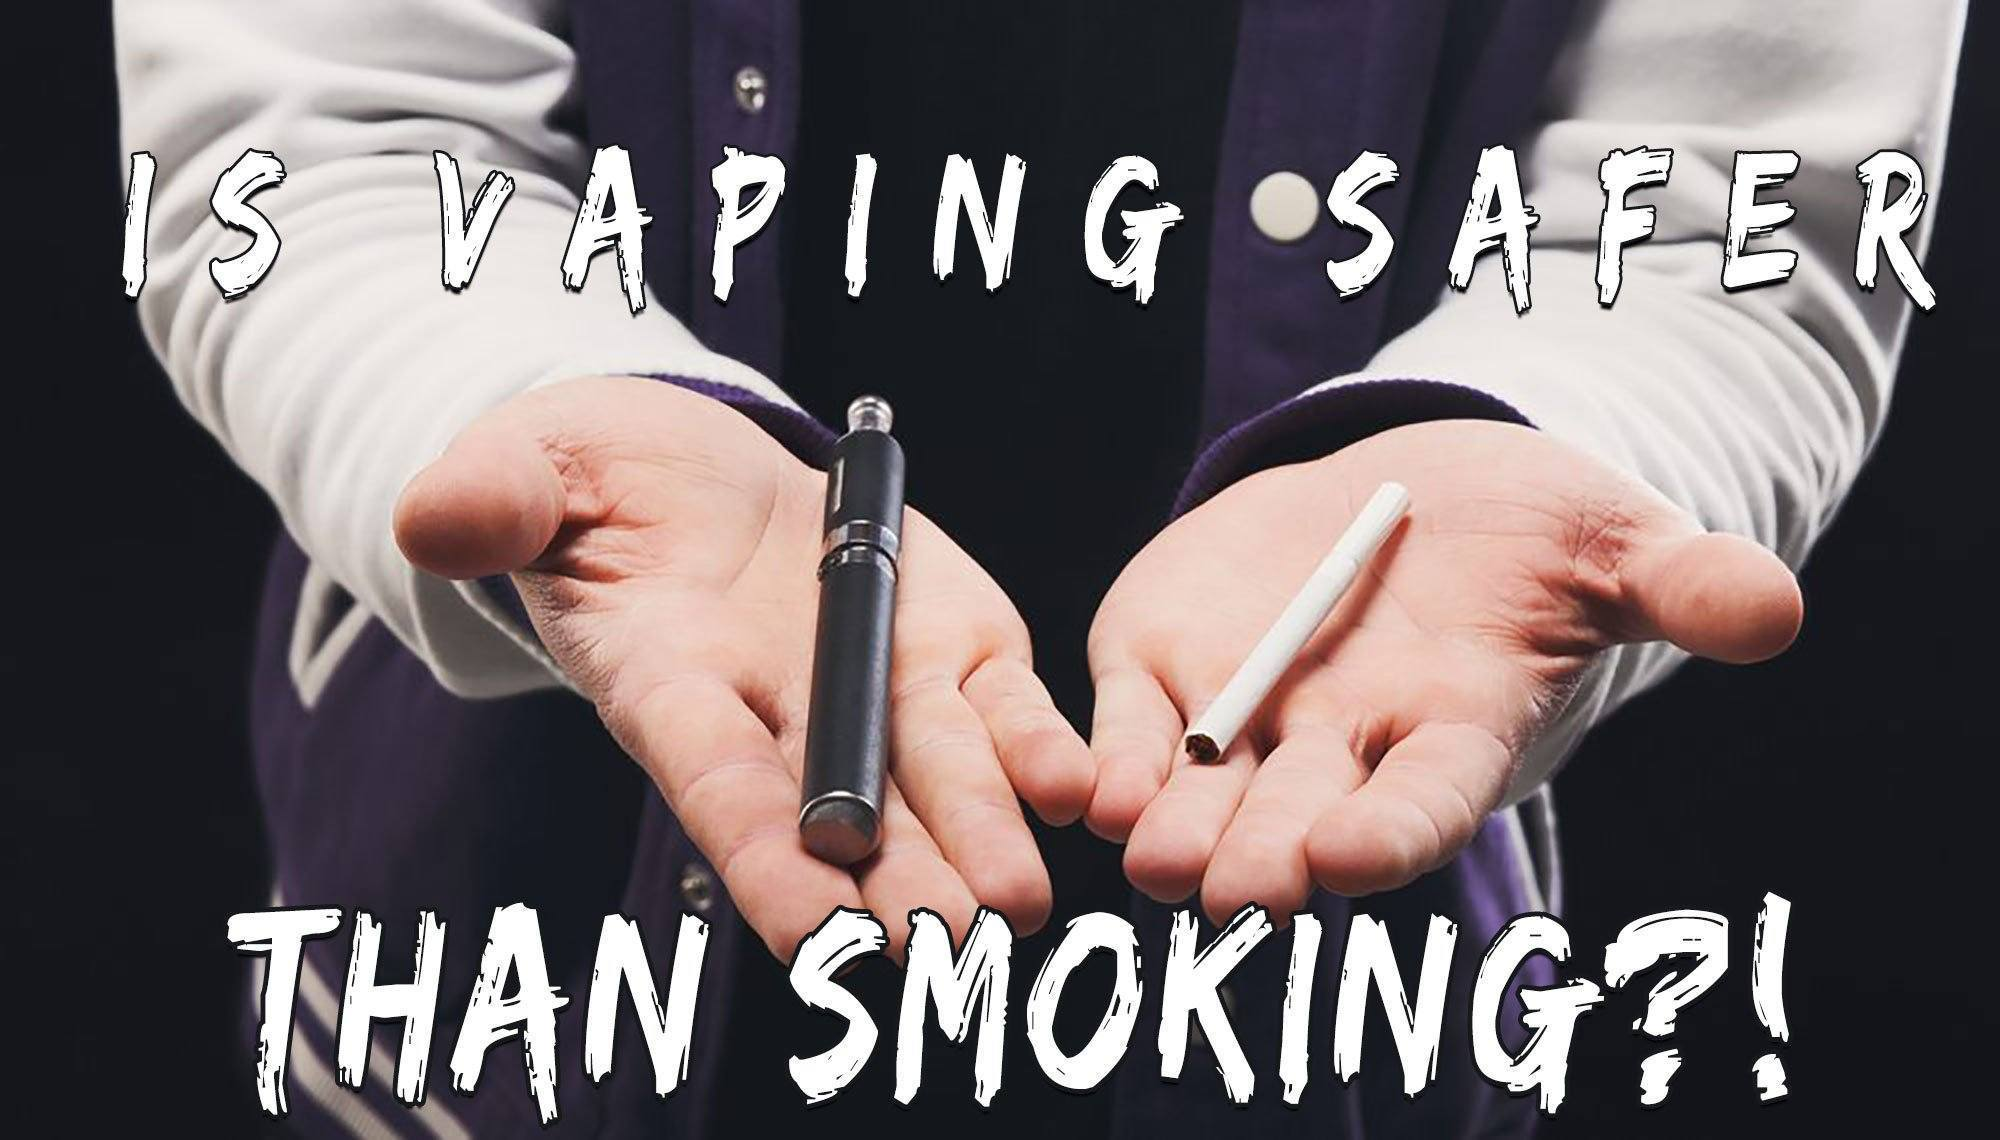 Is Vaping Safer Than Smoking?